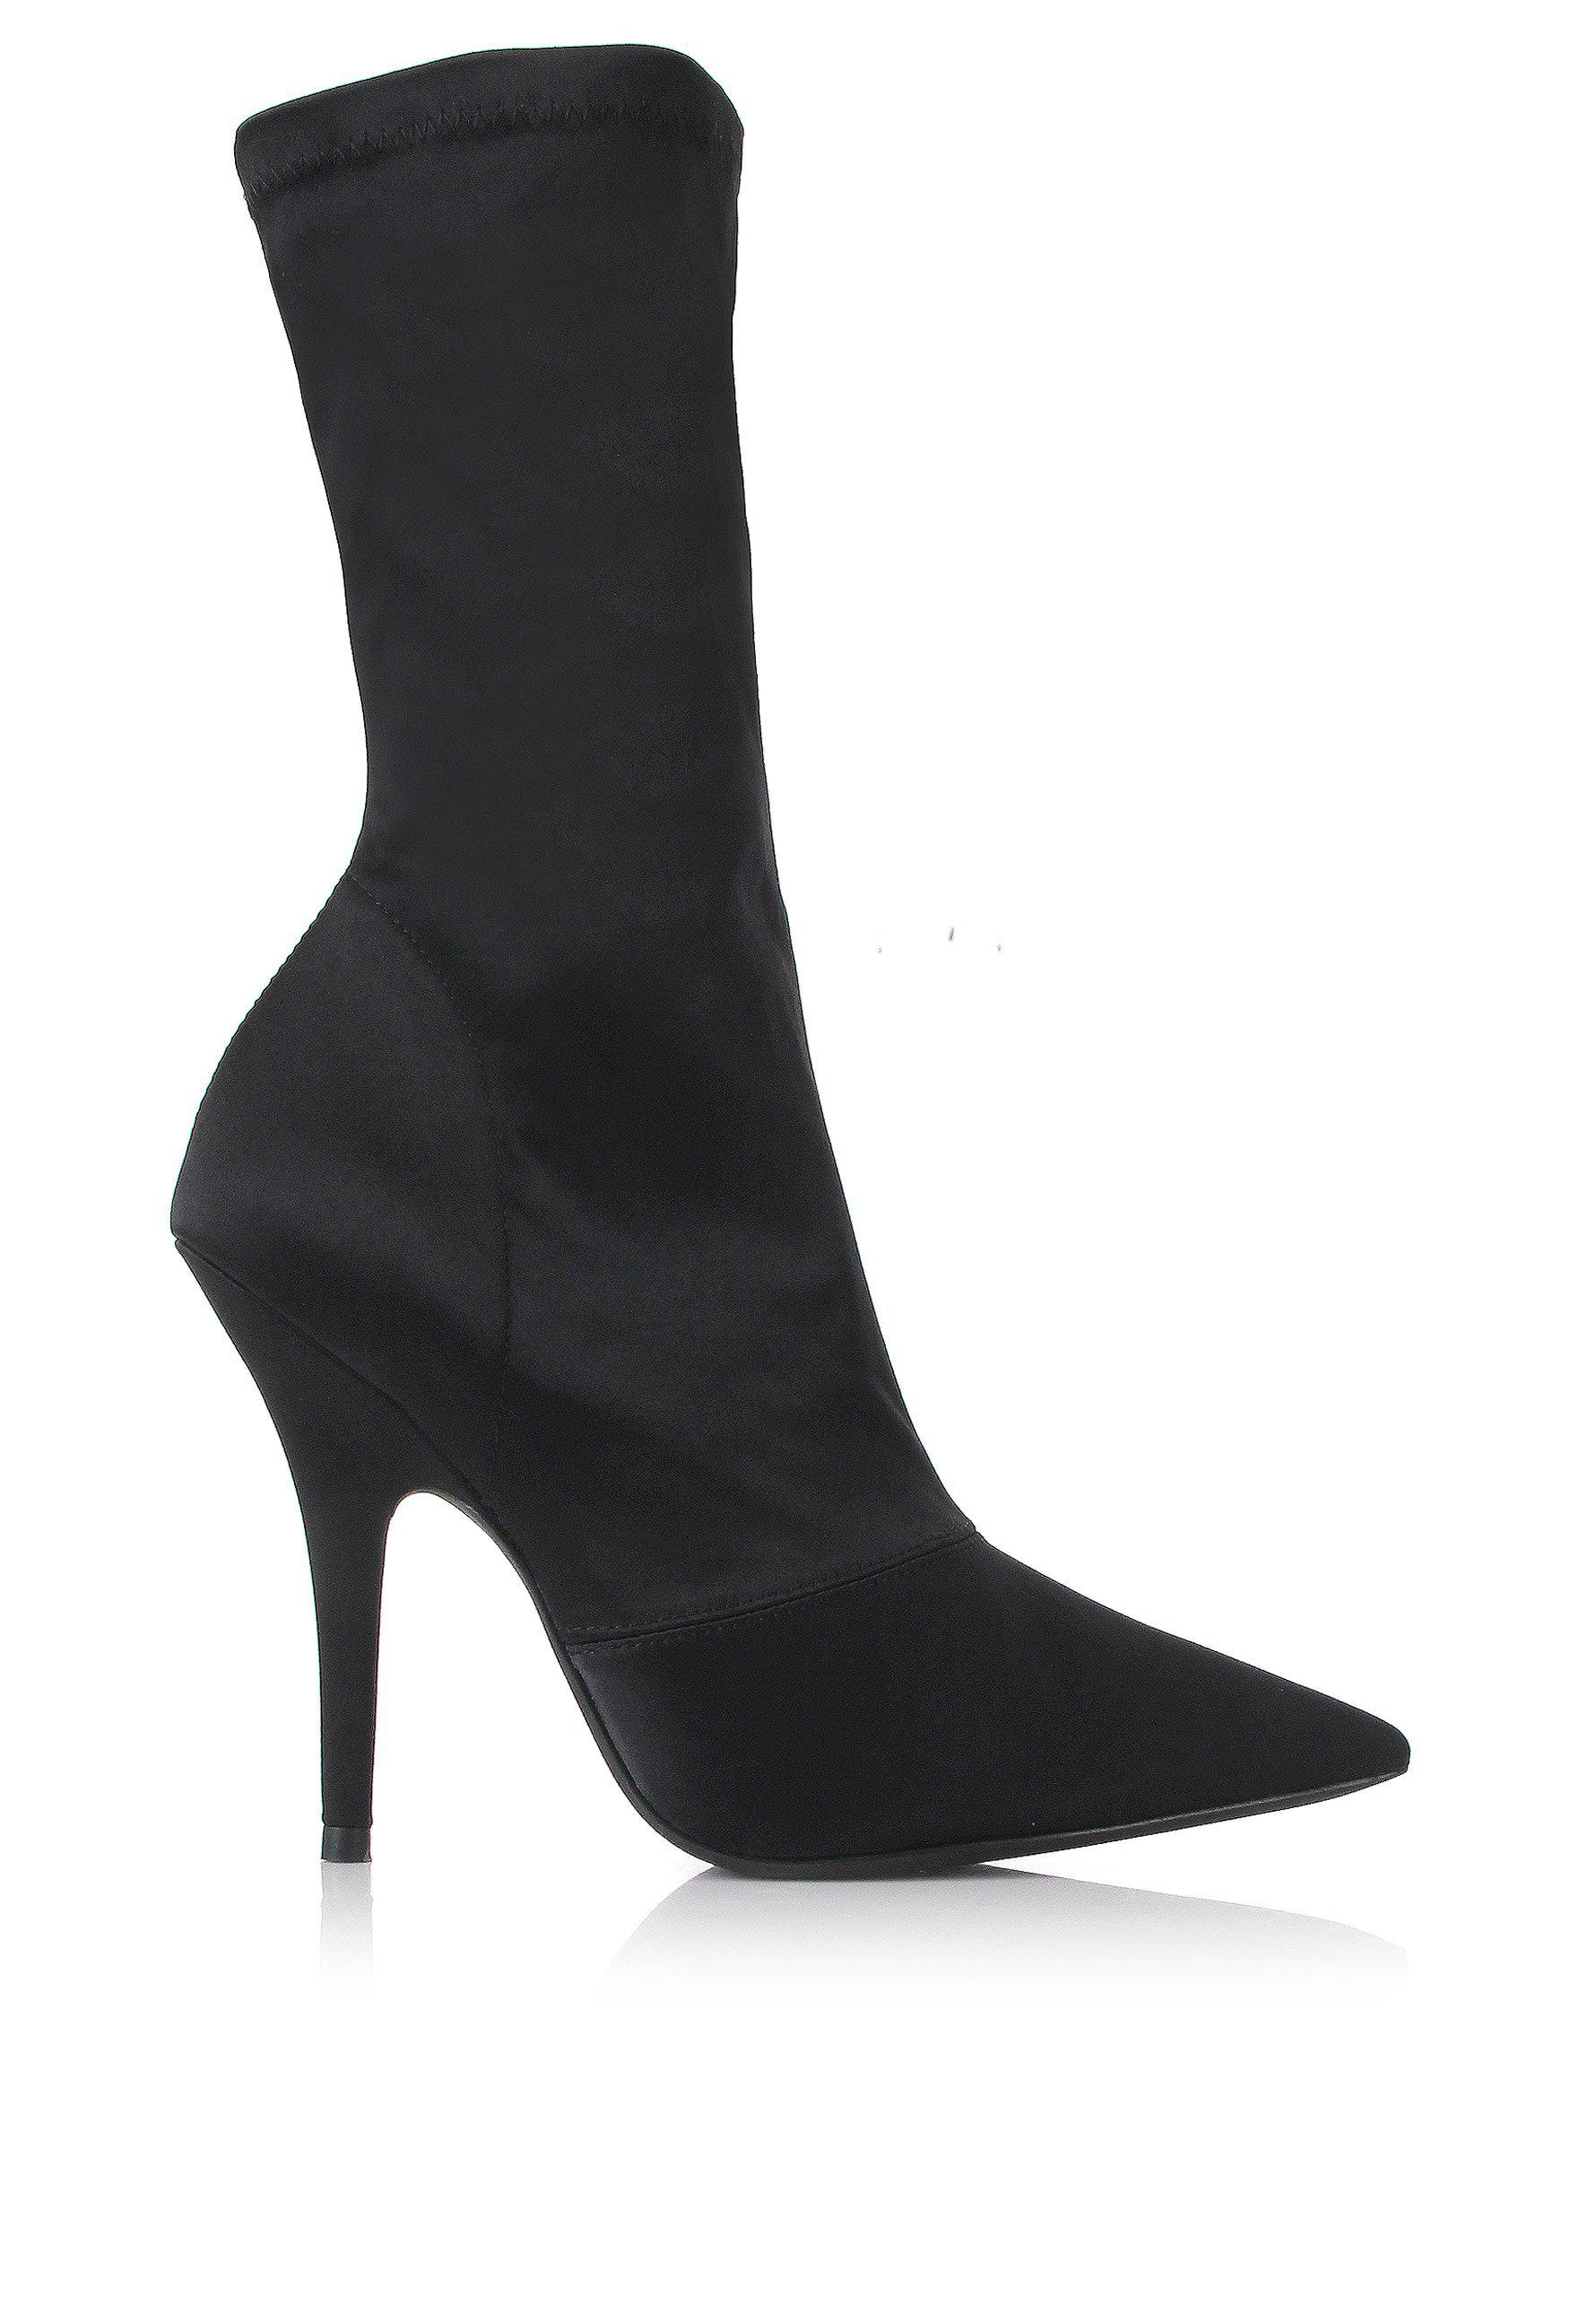 252b4896f43 Lyst - Yeezy Season 6 Stretch Satin Ankle Boots Black in Black